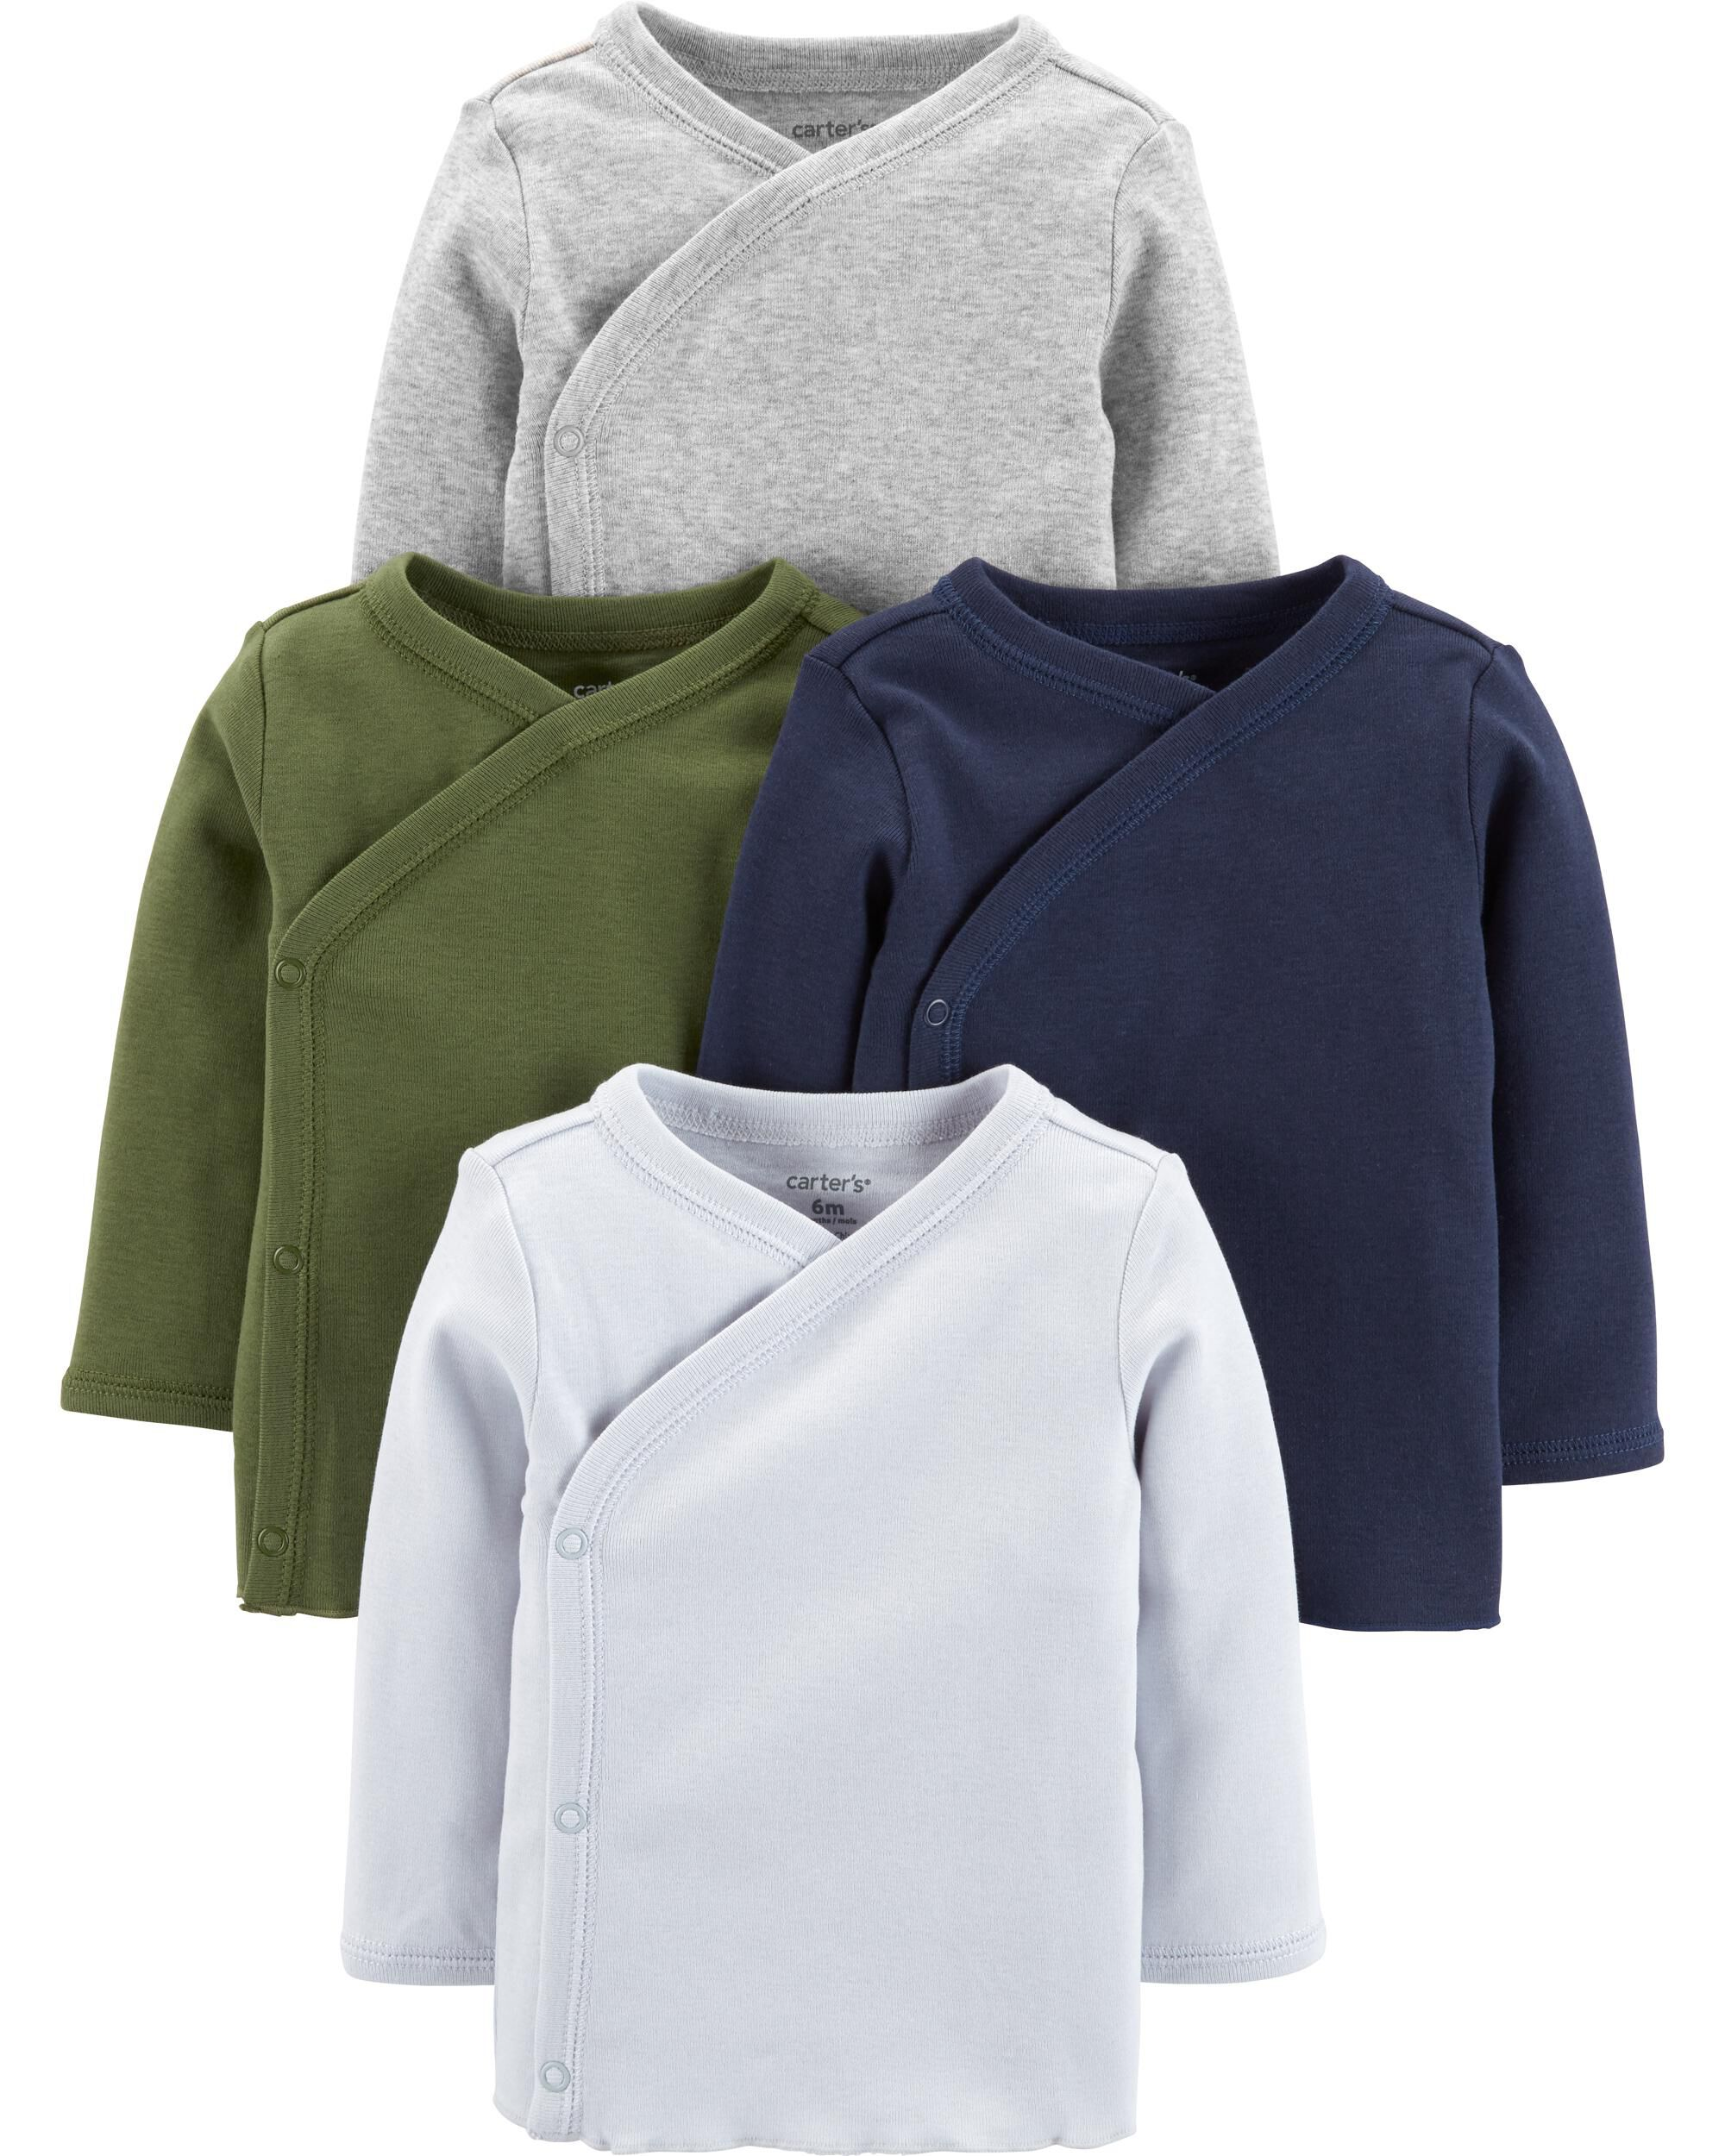 *CLEARANCE* 4-Pack Side-Snap Tees